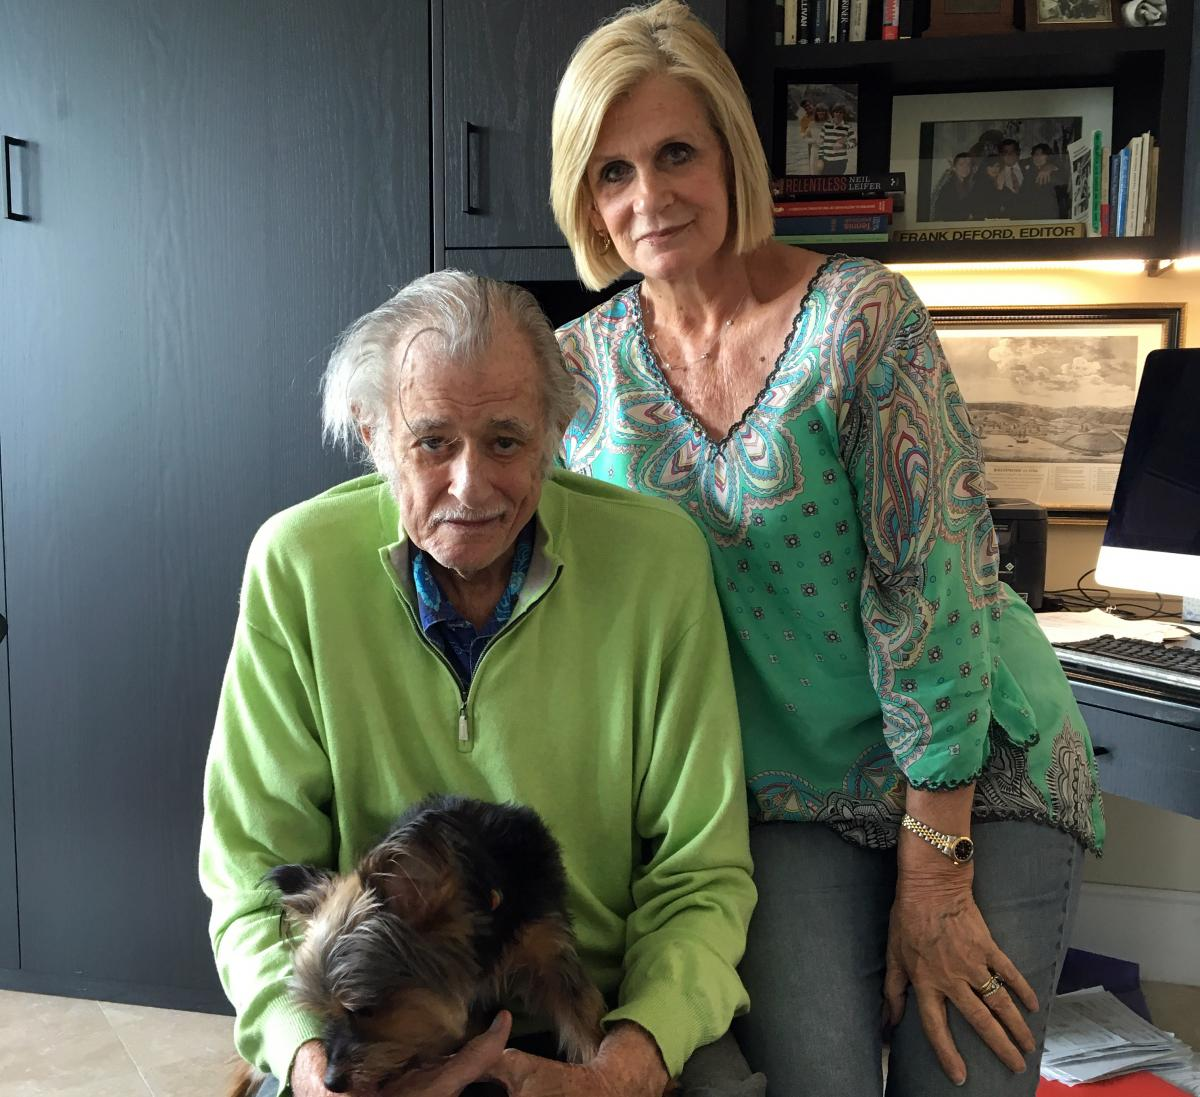 Frank Deford, his wife, Carol, and their dog, Miss Snickers, in his home office in Key West, Florida. On Wednesday, Deford retired from Morning Edition as sports commentator.